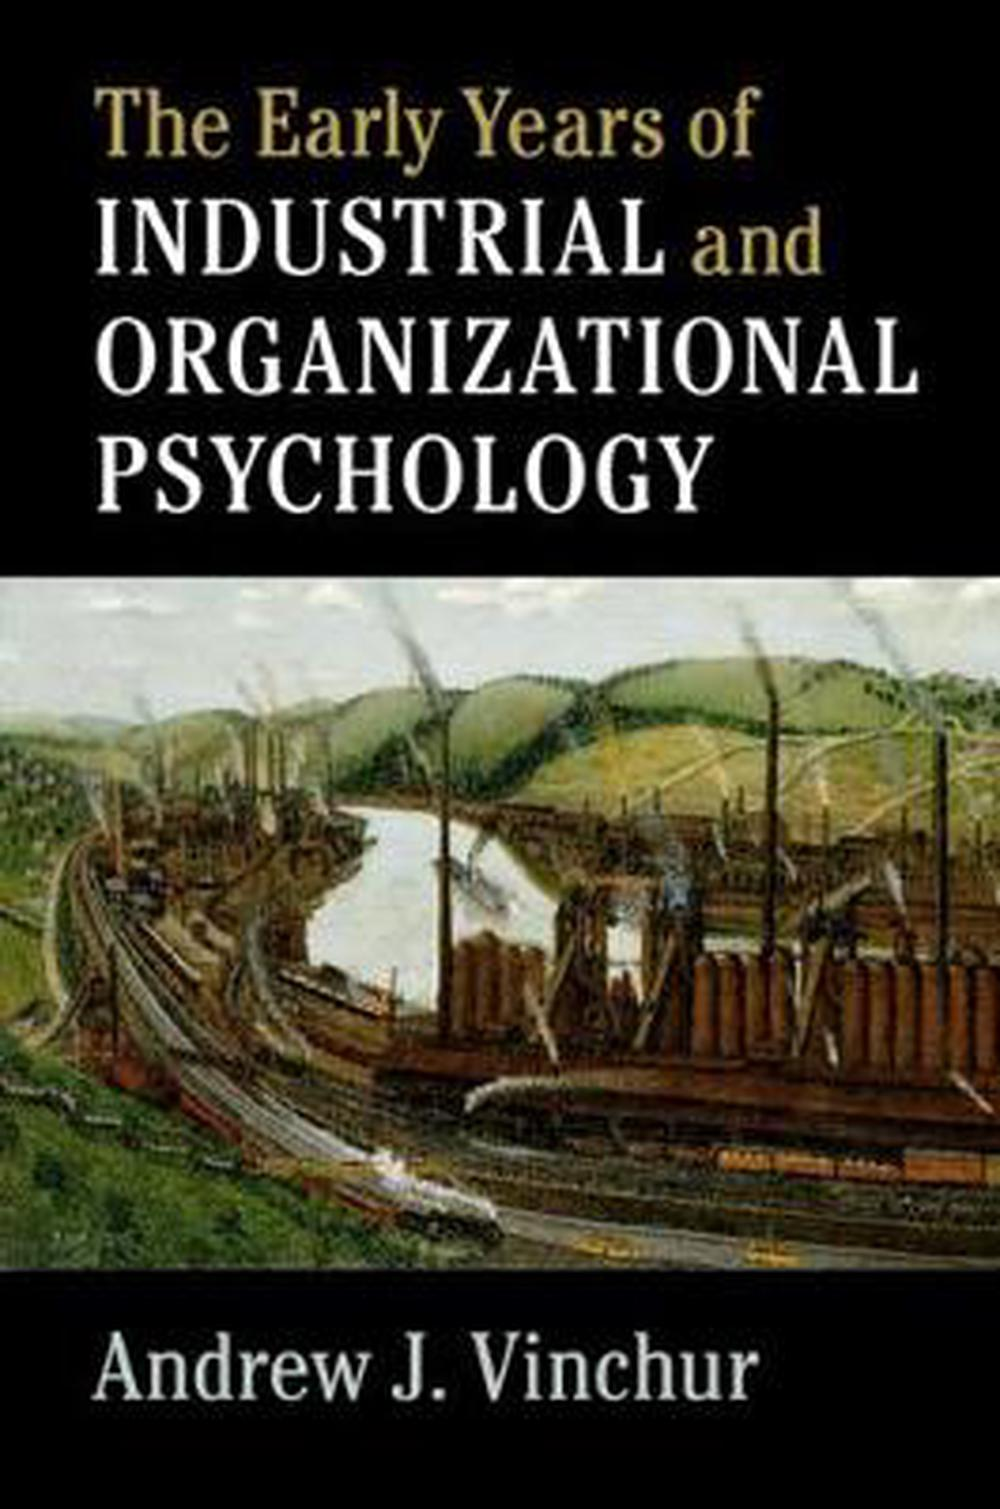 Early Years of Industrial and Organizational Psychology